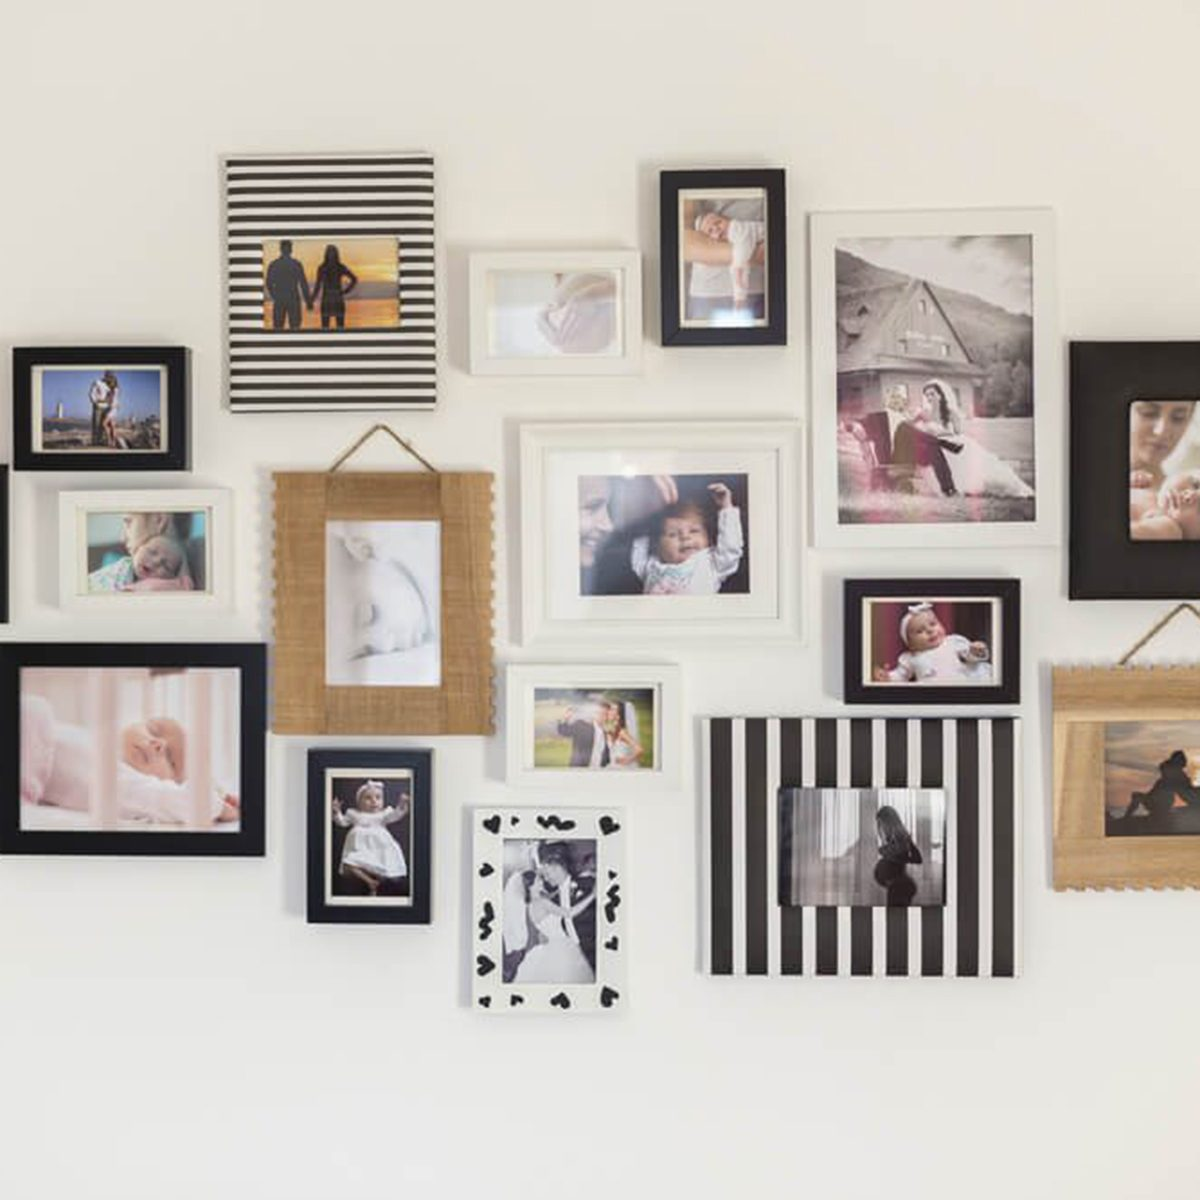 Tons of frames photos together on a wall